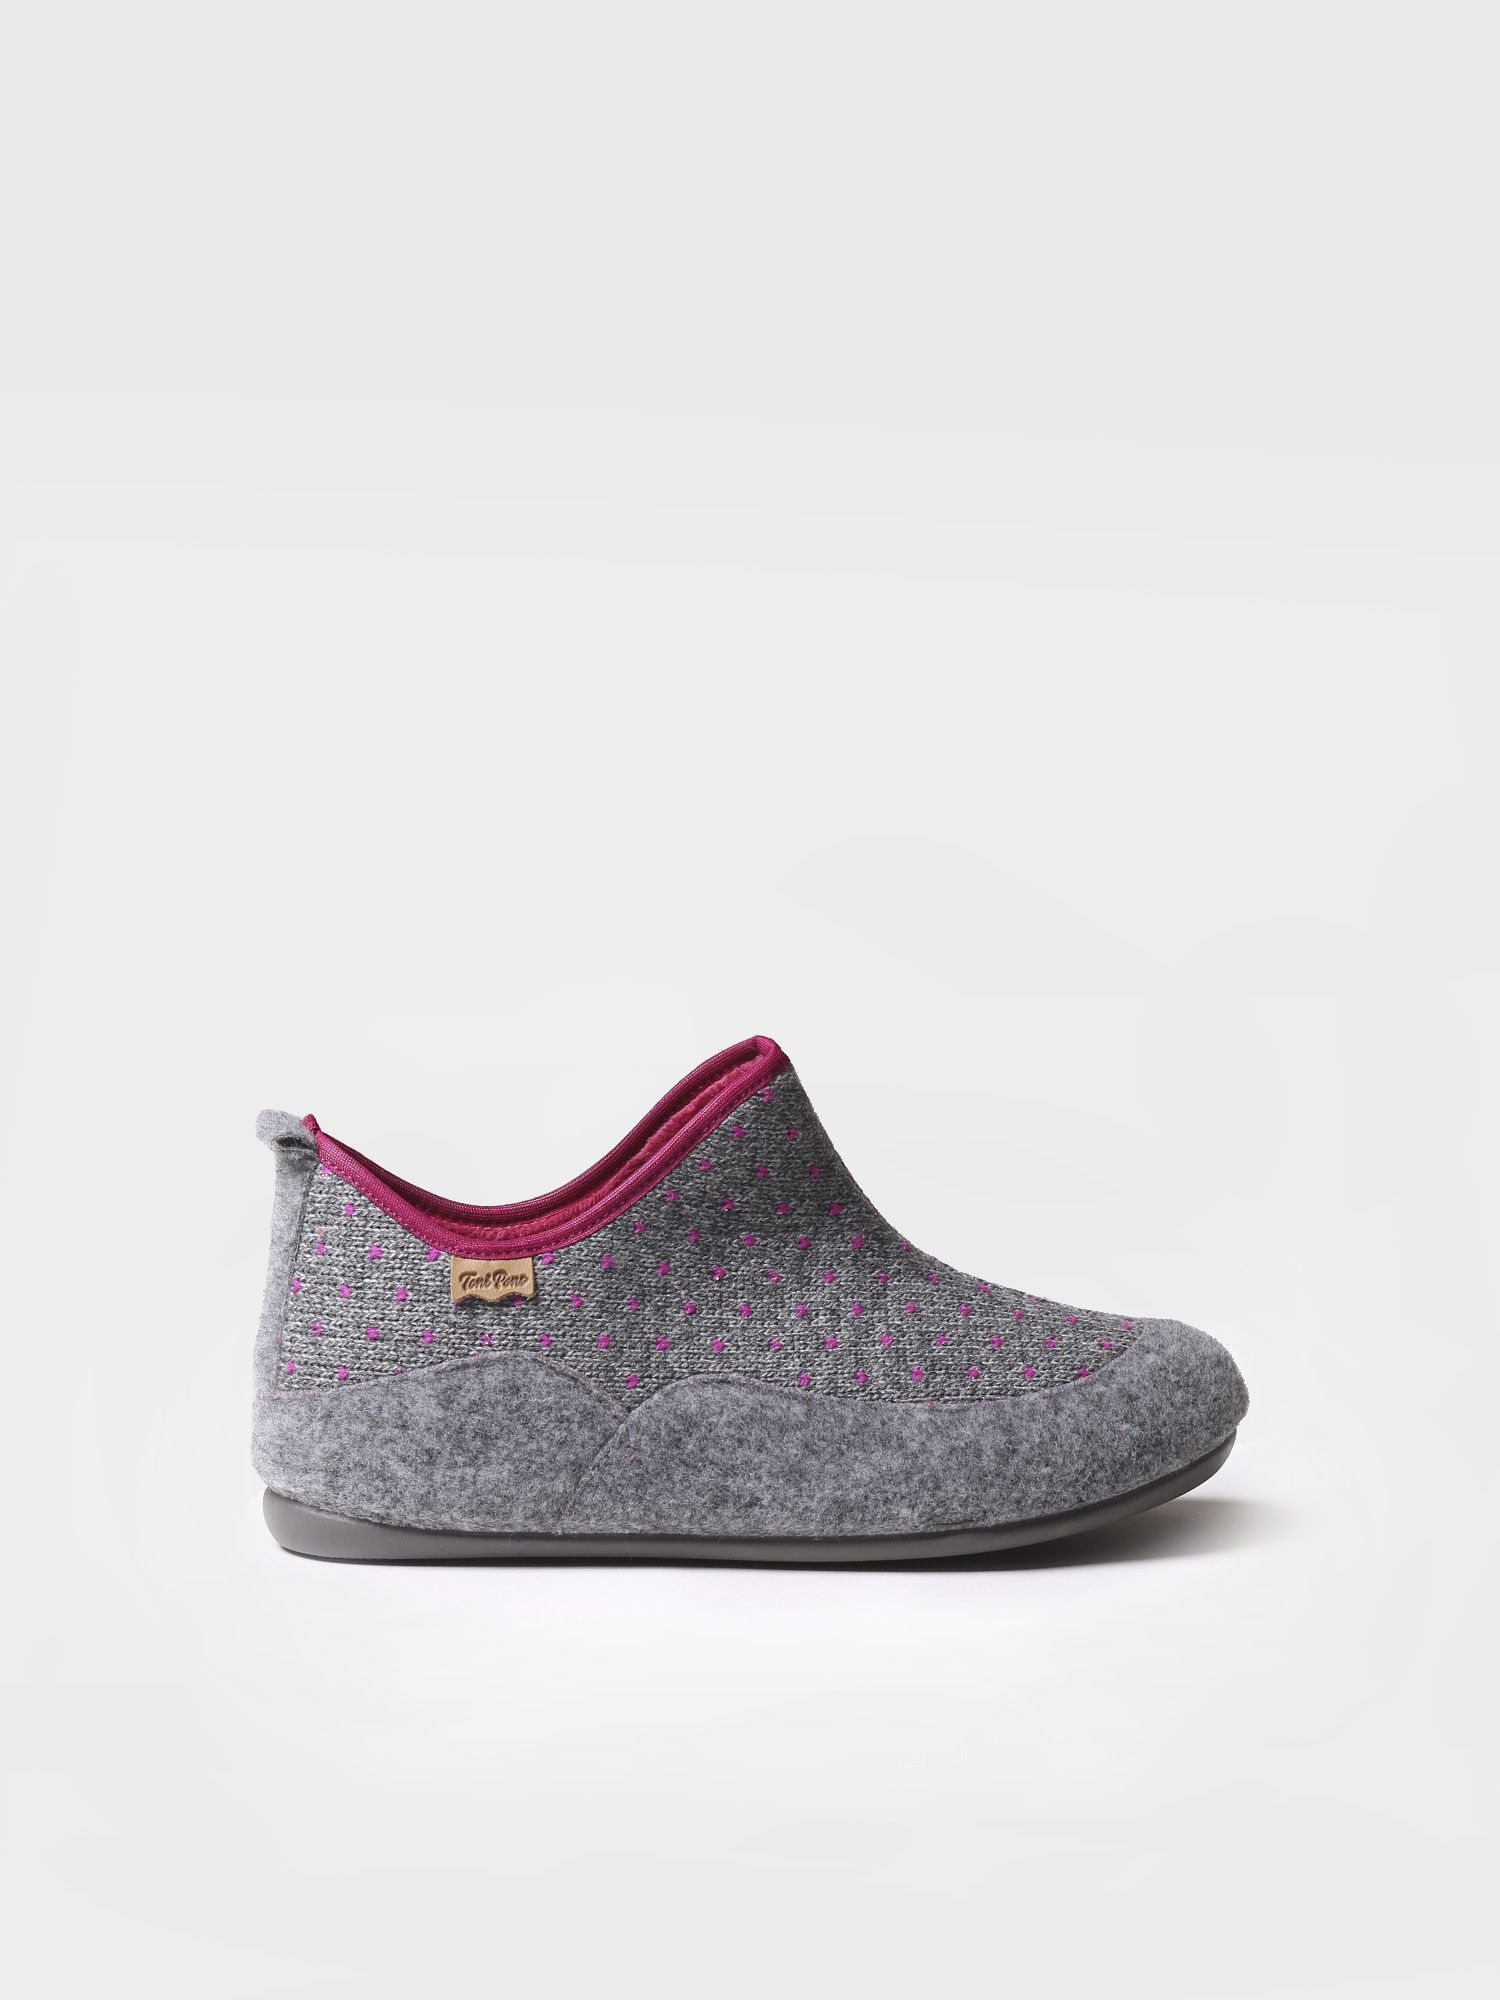 Slipper for women made of felt - MARE-LO